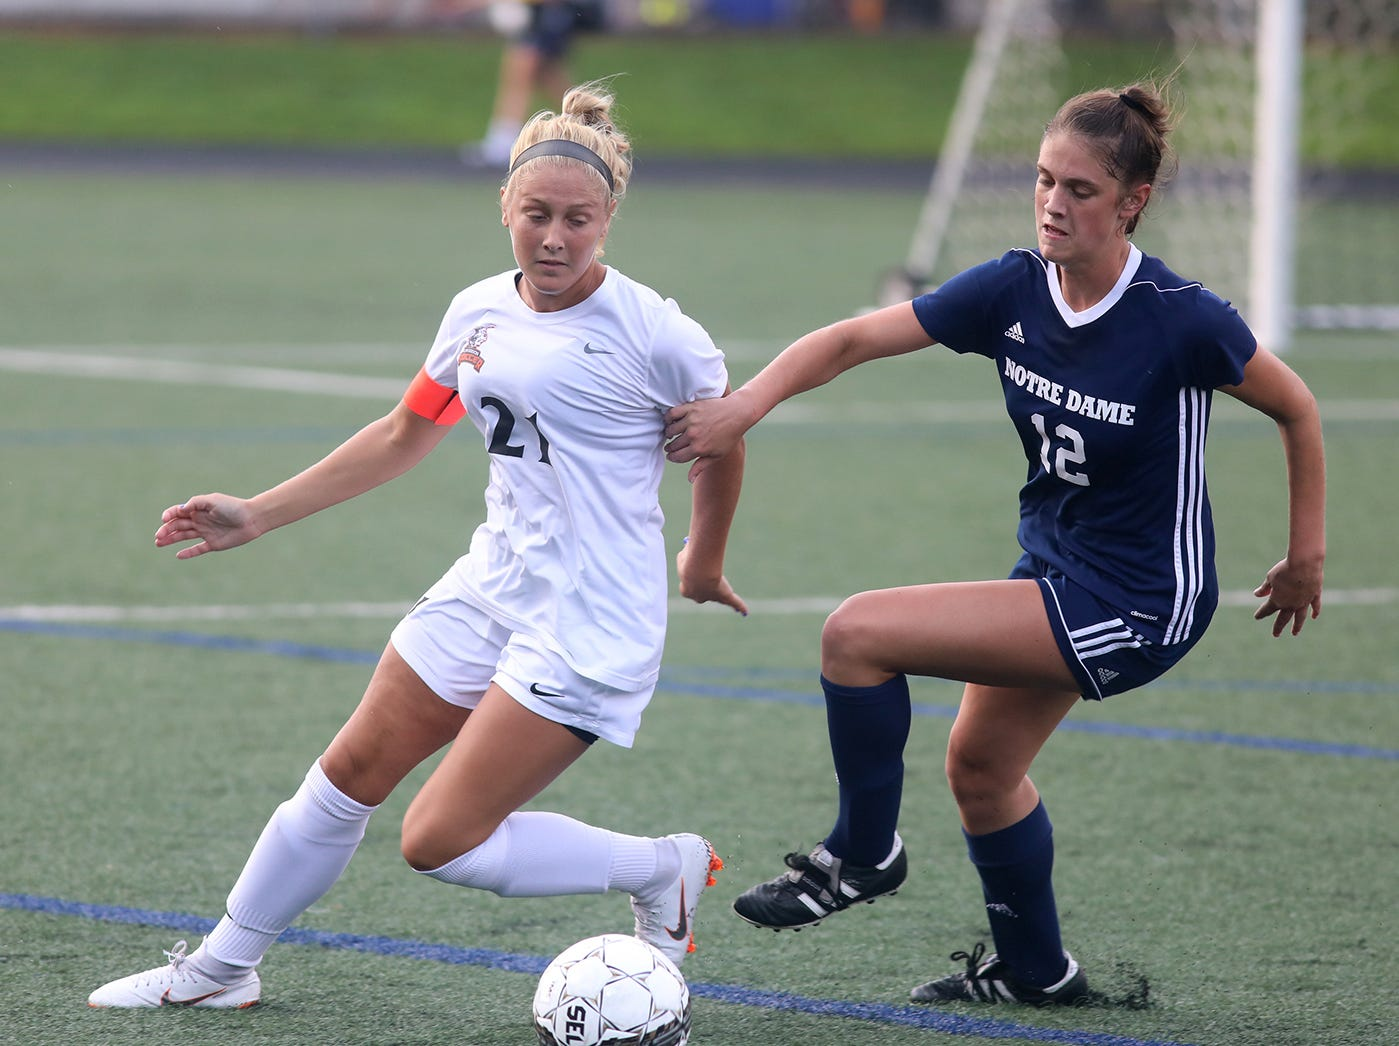 NDA's Maya Decker (12) battles  Anderson's Emily Camden for the ball during Soccerama at Tower Park, Saturday, Aug. 11, 2018.